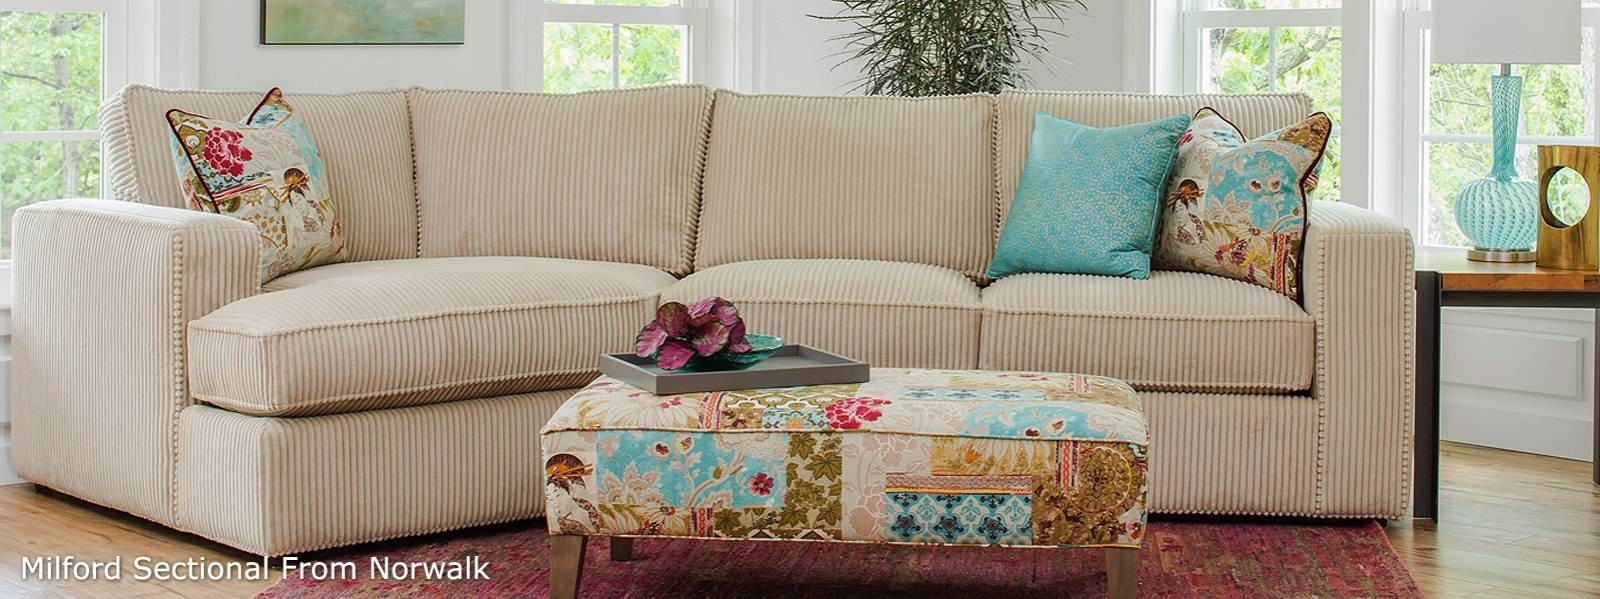 Featured Image of Sofas And Chairs